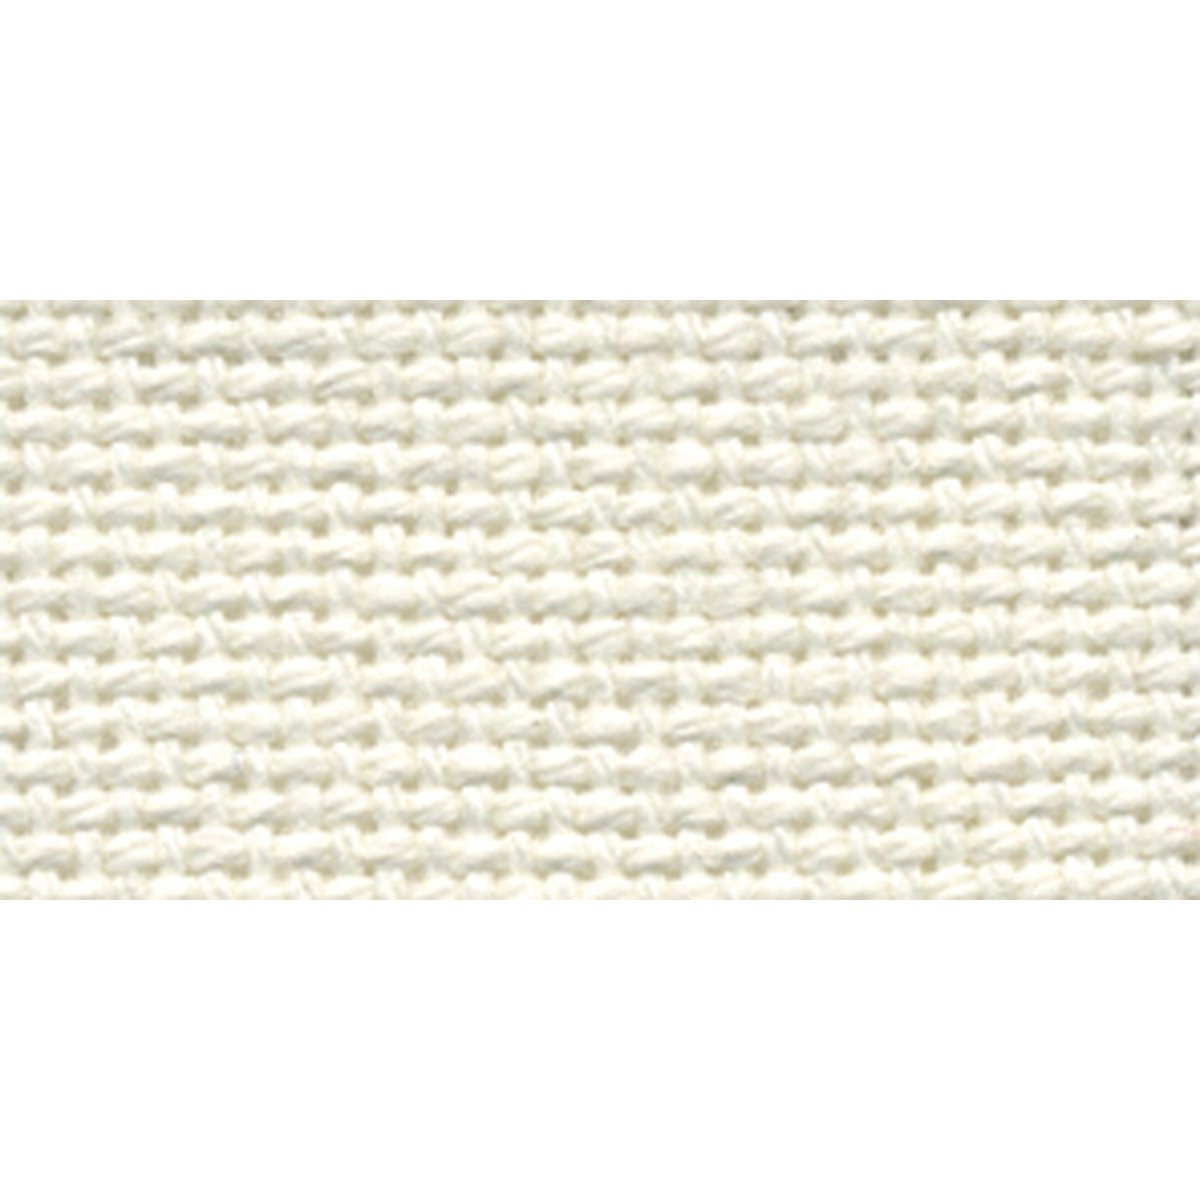 DMC MO0236-0322 Charles Craft 28 Count Evenweave Monaco Aida Cloth, Antique White, 15 by 18-Inch Notions - In Network